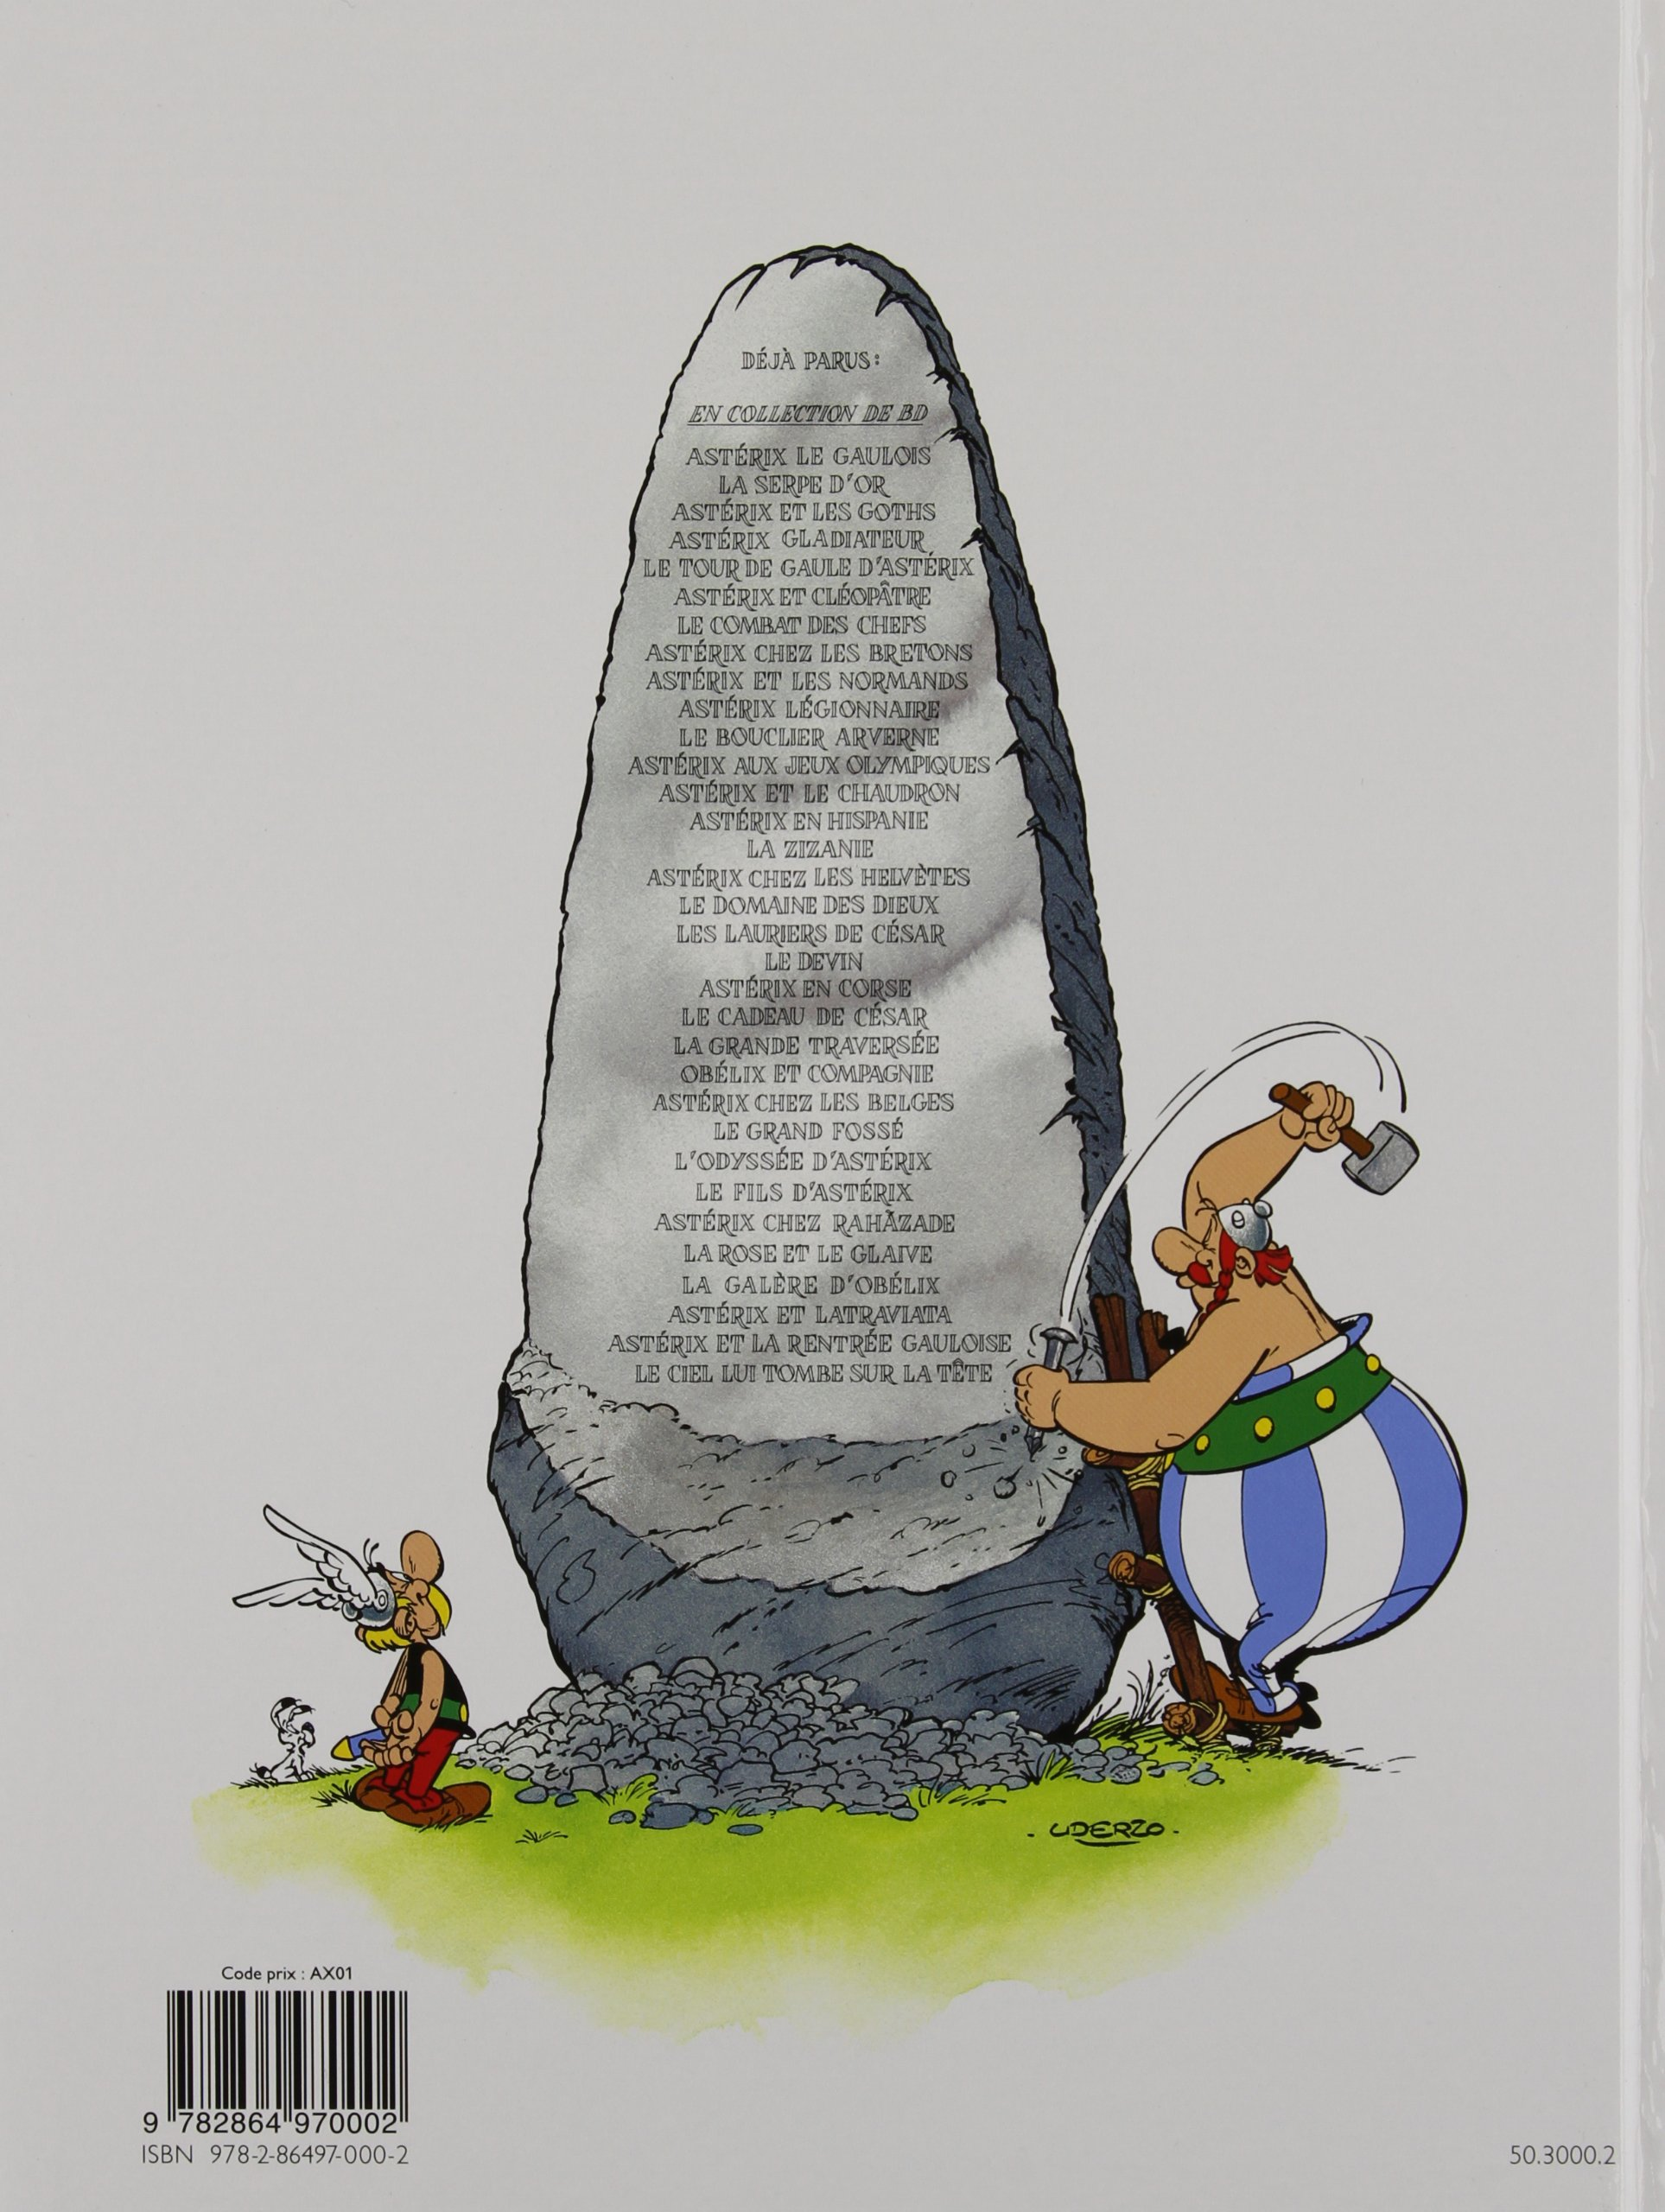 Astérix - Le Grand Fossé Asterix n°25 (Astérix - Le Grand Fosse) (French Edition) by Les Editions Albert Rene